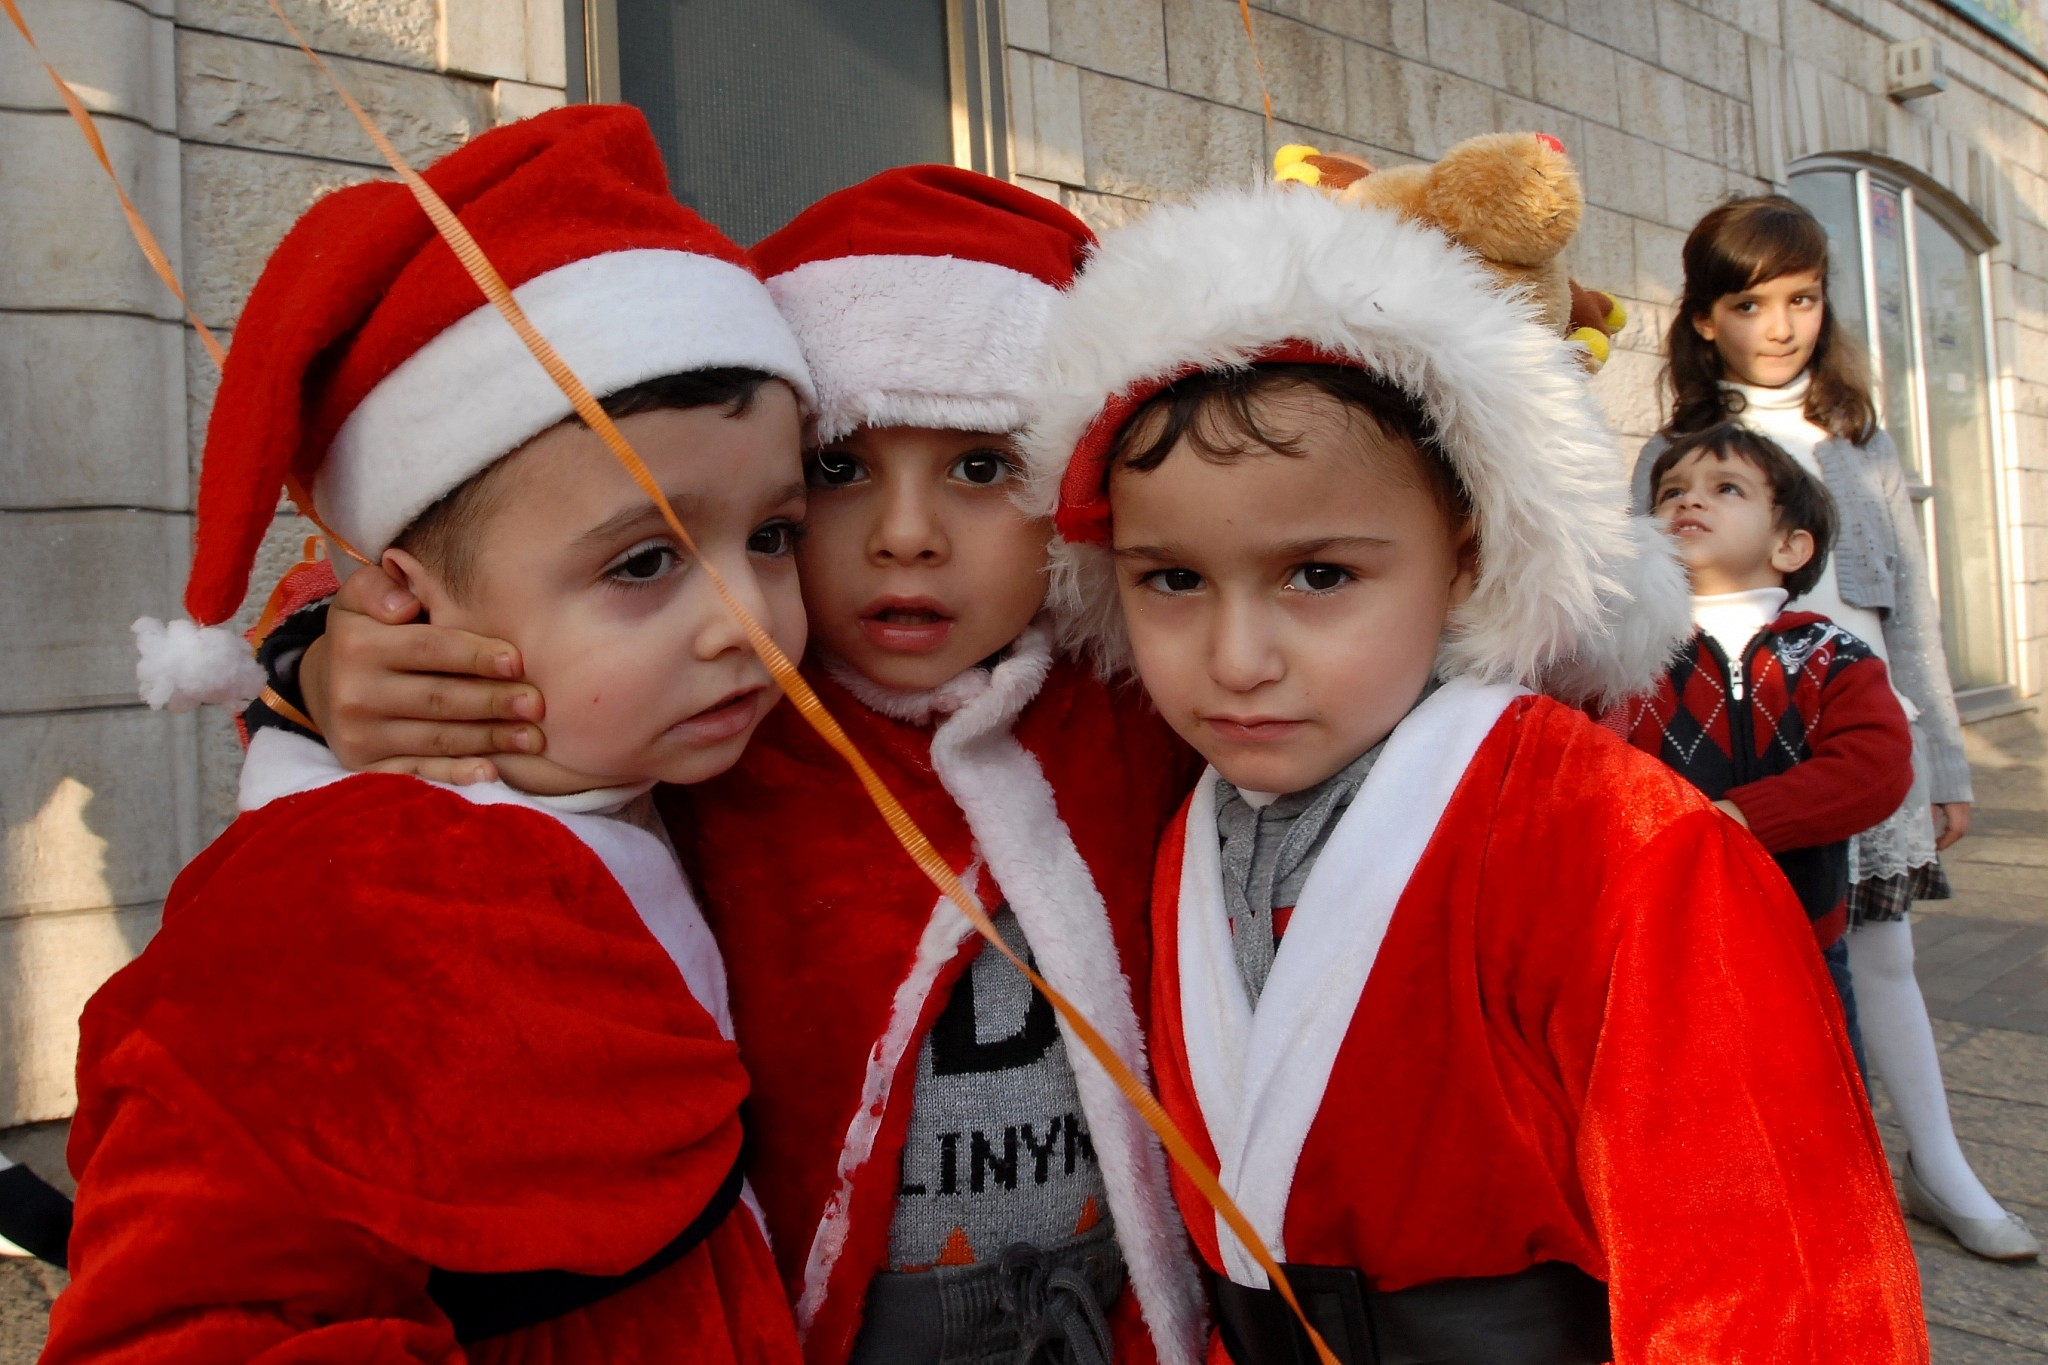 Christmas celebrations cancelled in Jesus' hometown, Nazareth